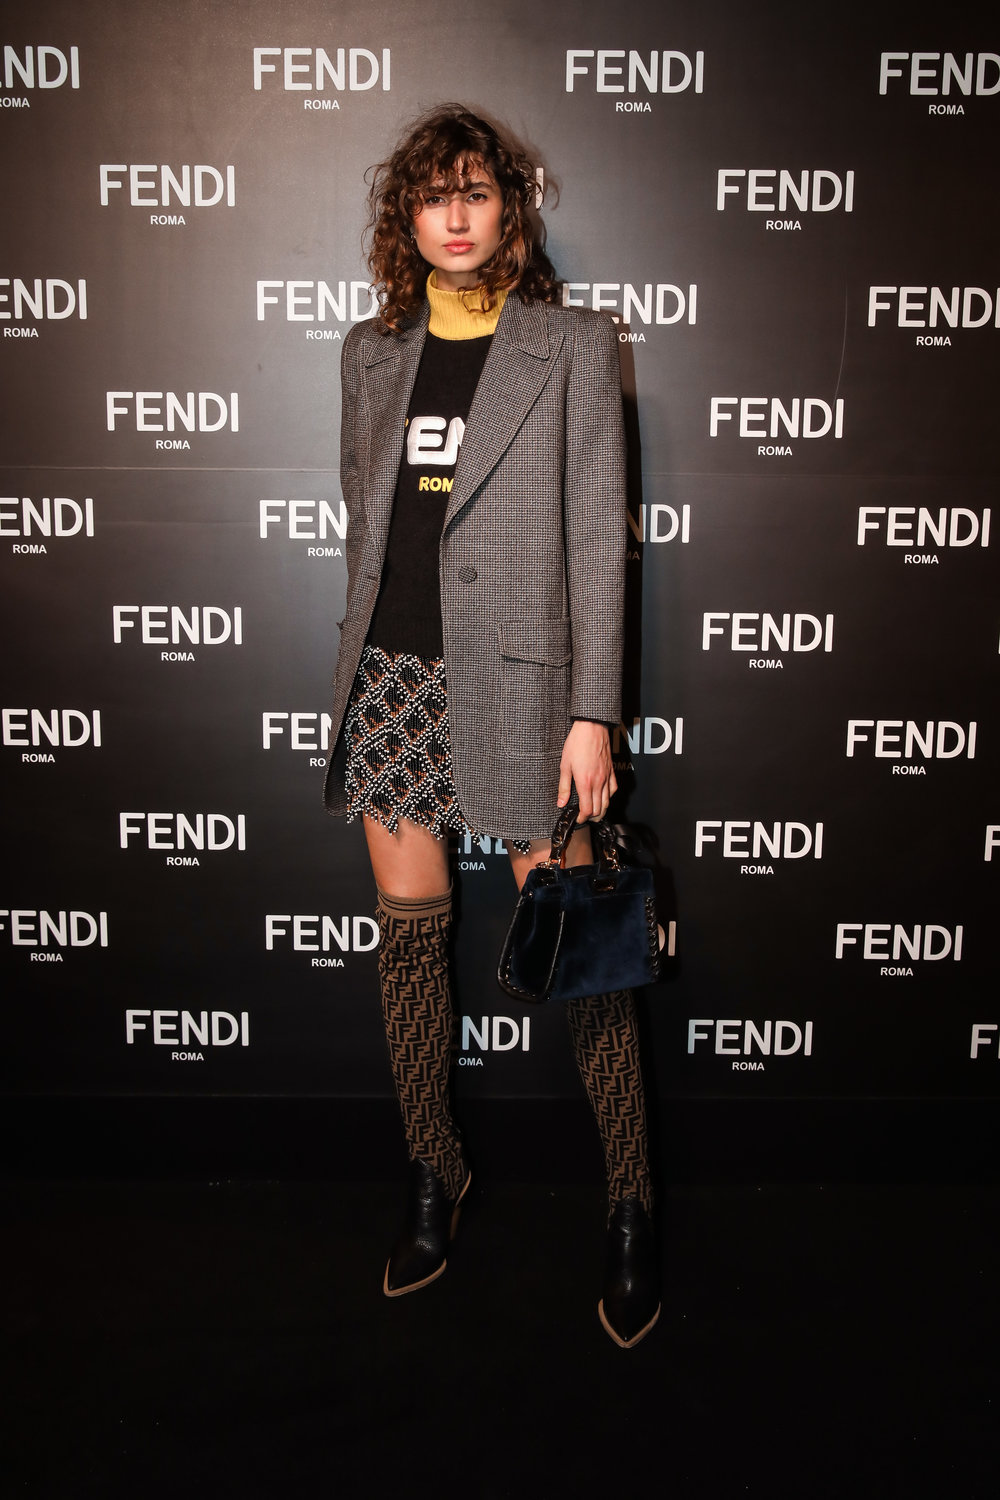 Fendi Collins Street Launch 30.8.18-3344.jpg